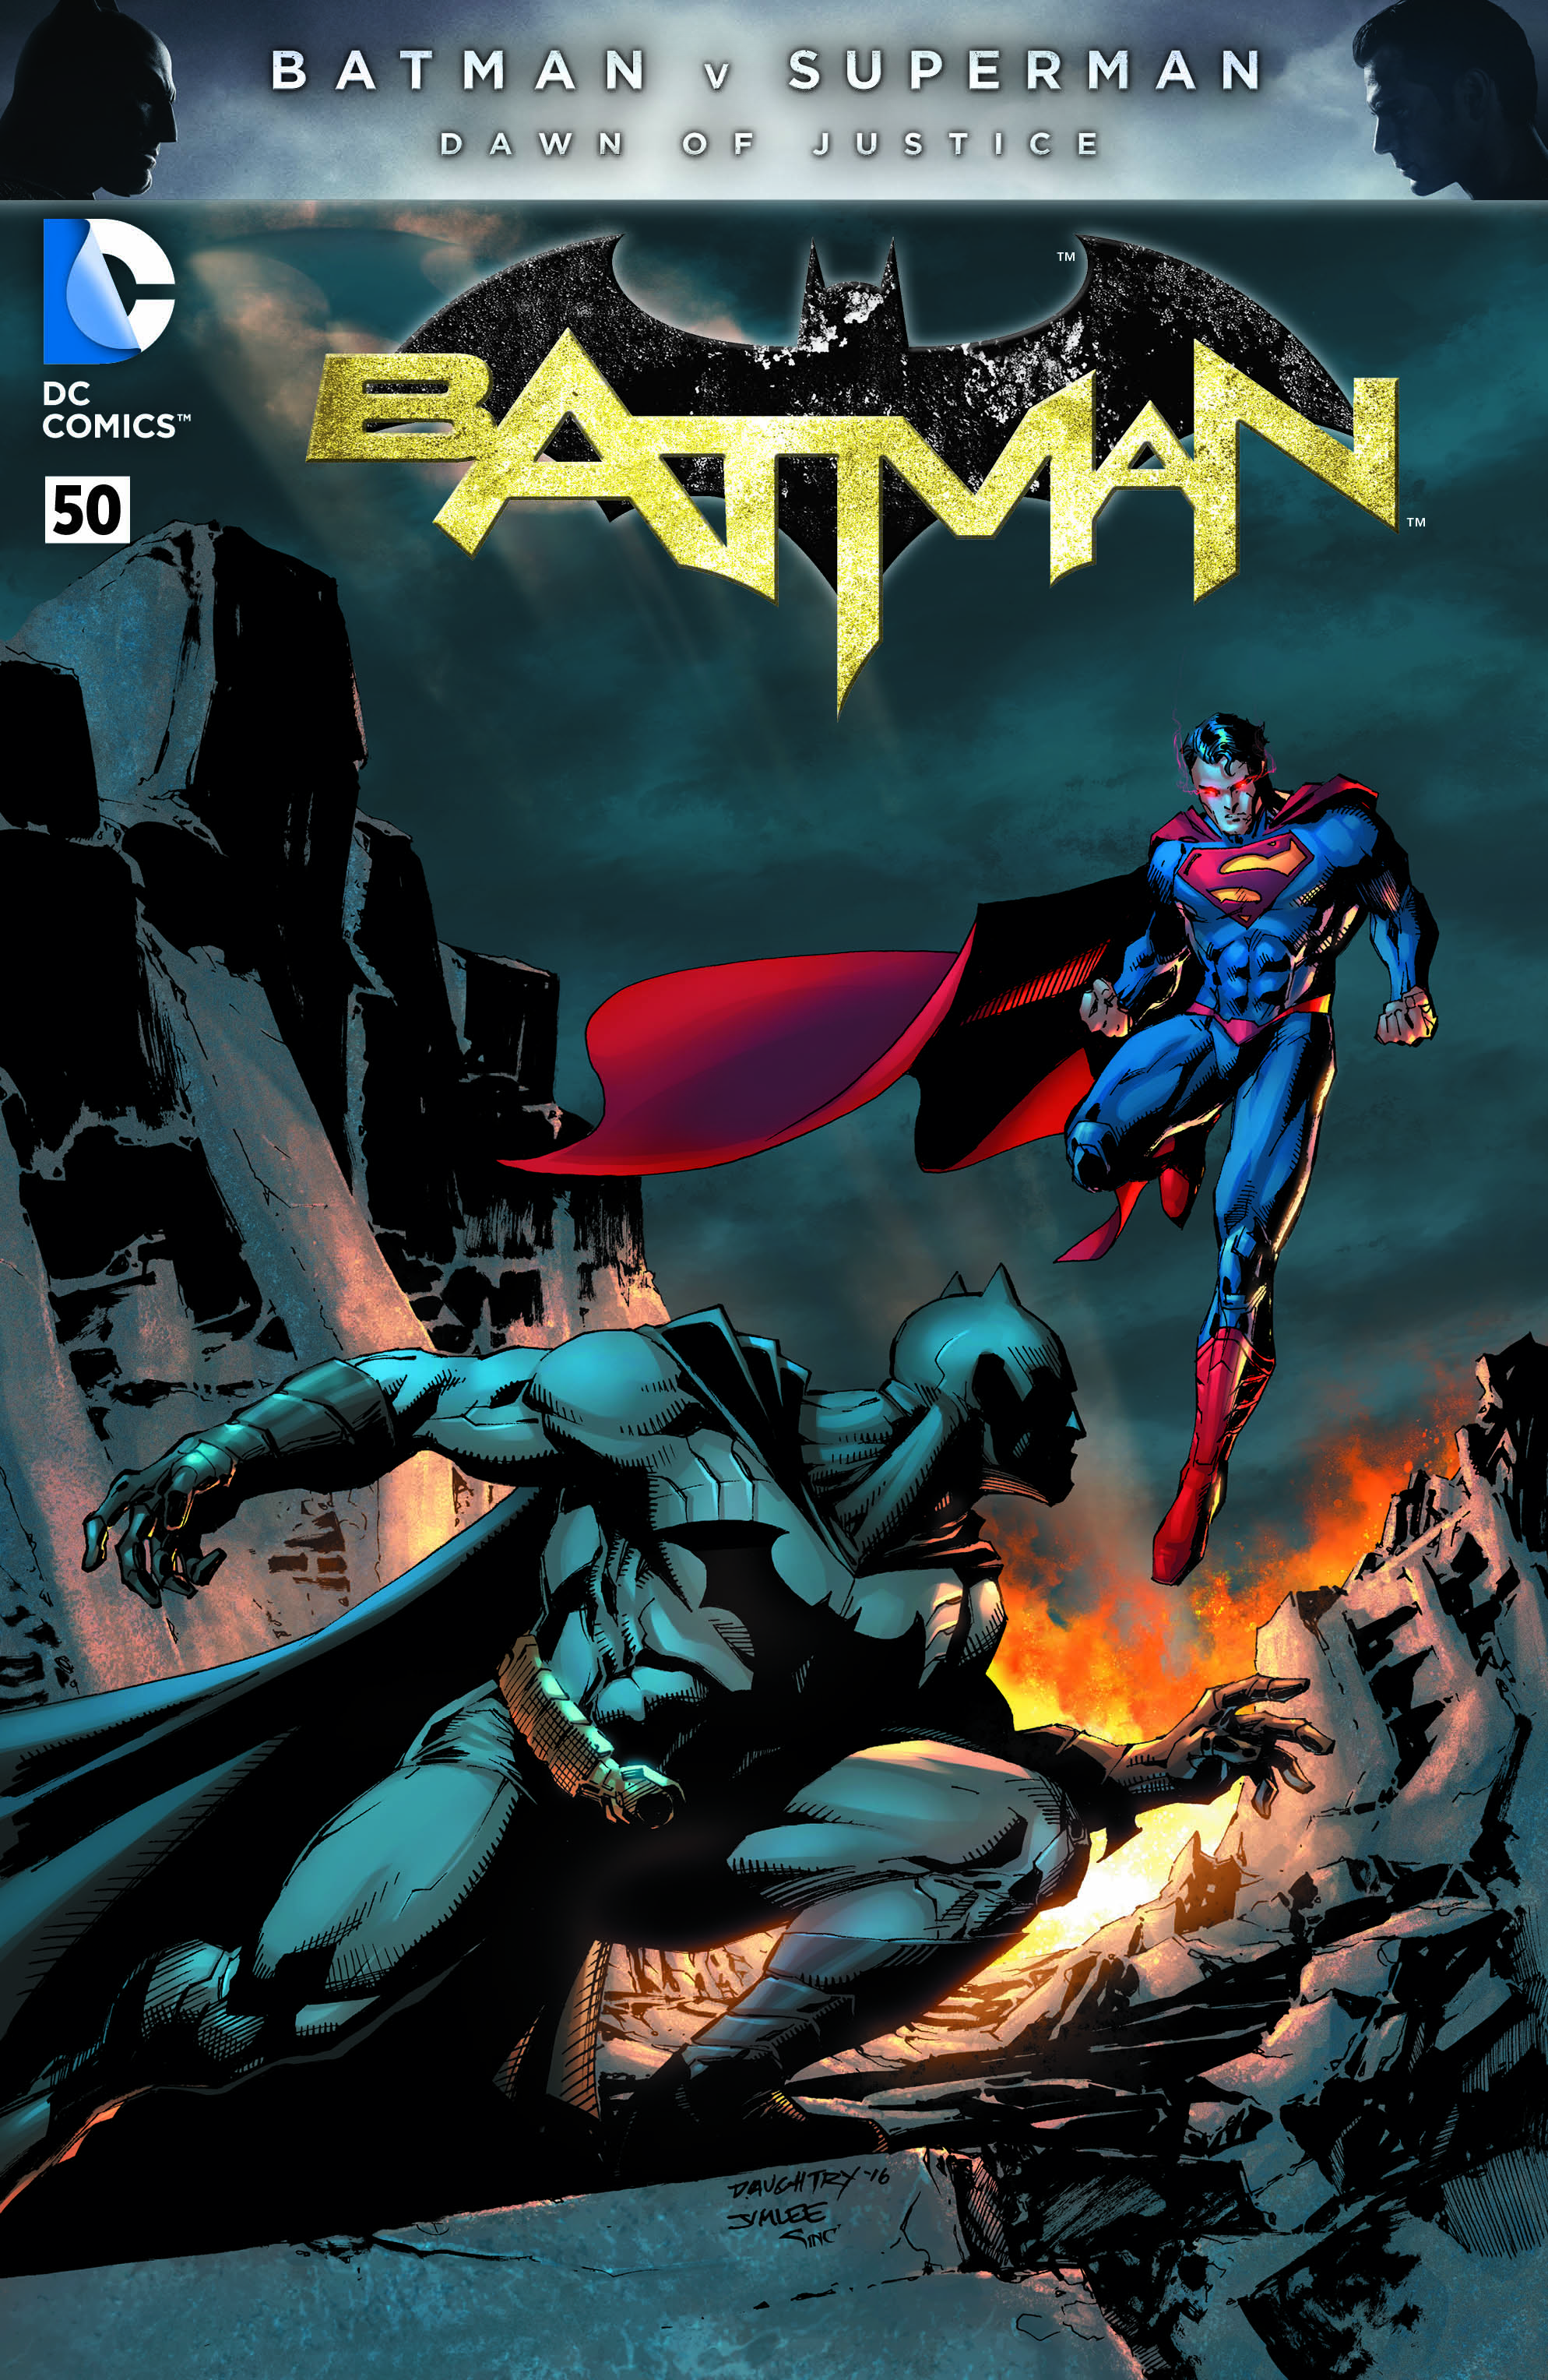 Full Colour Variant by Jim Lee & Chris Daughtry